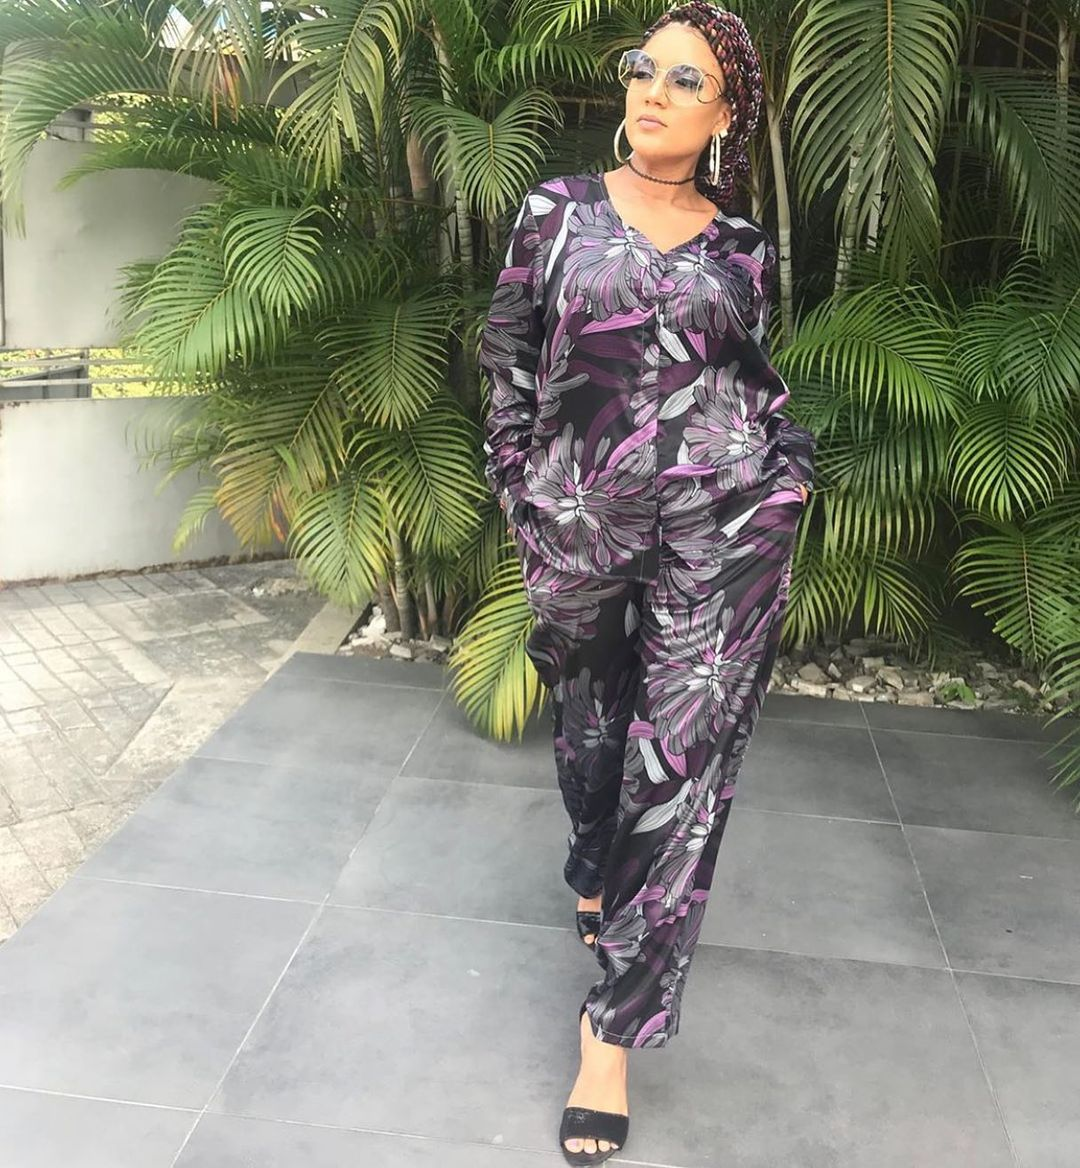 Gifty blows hot